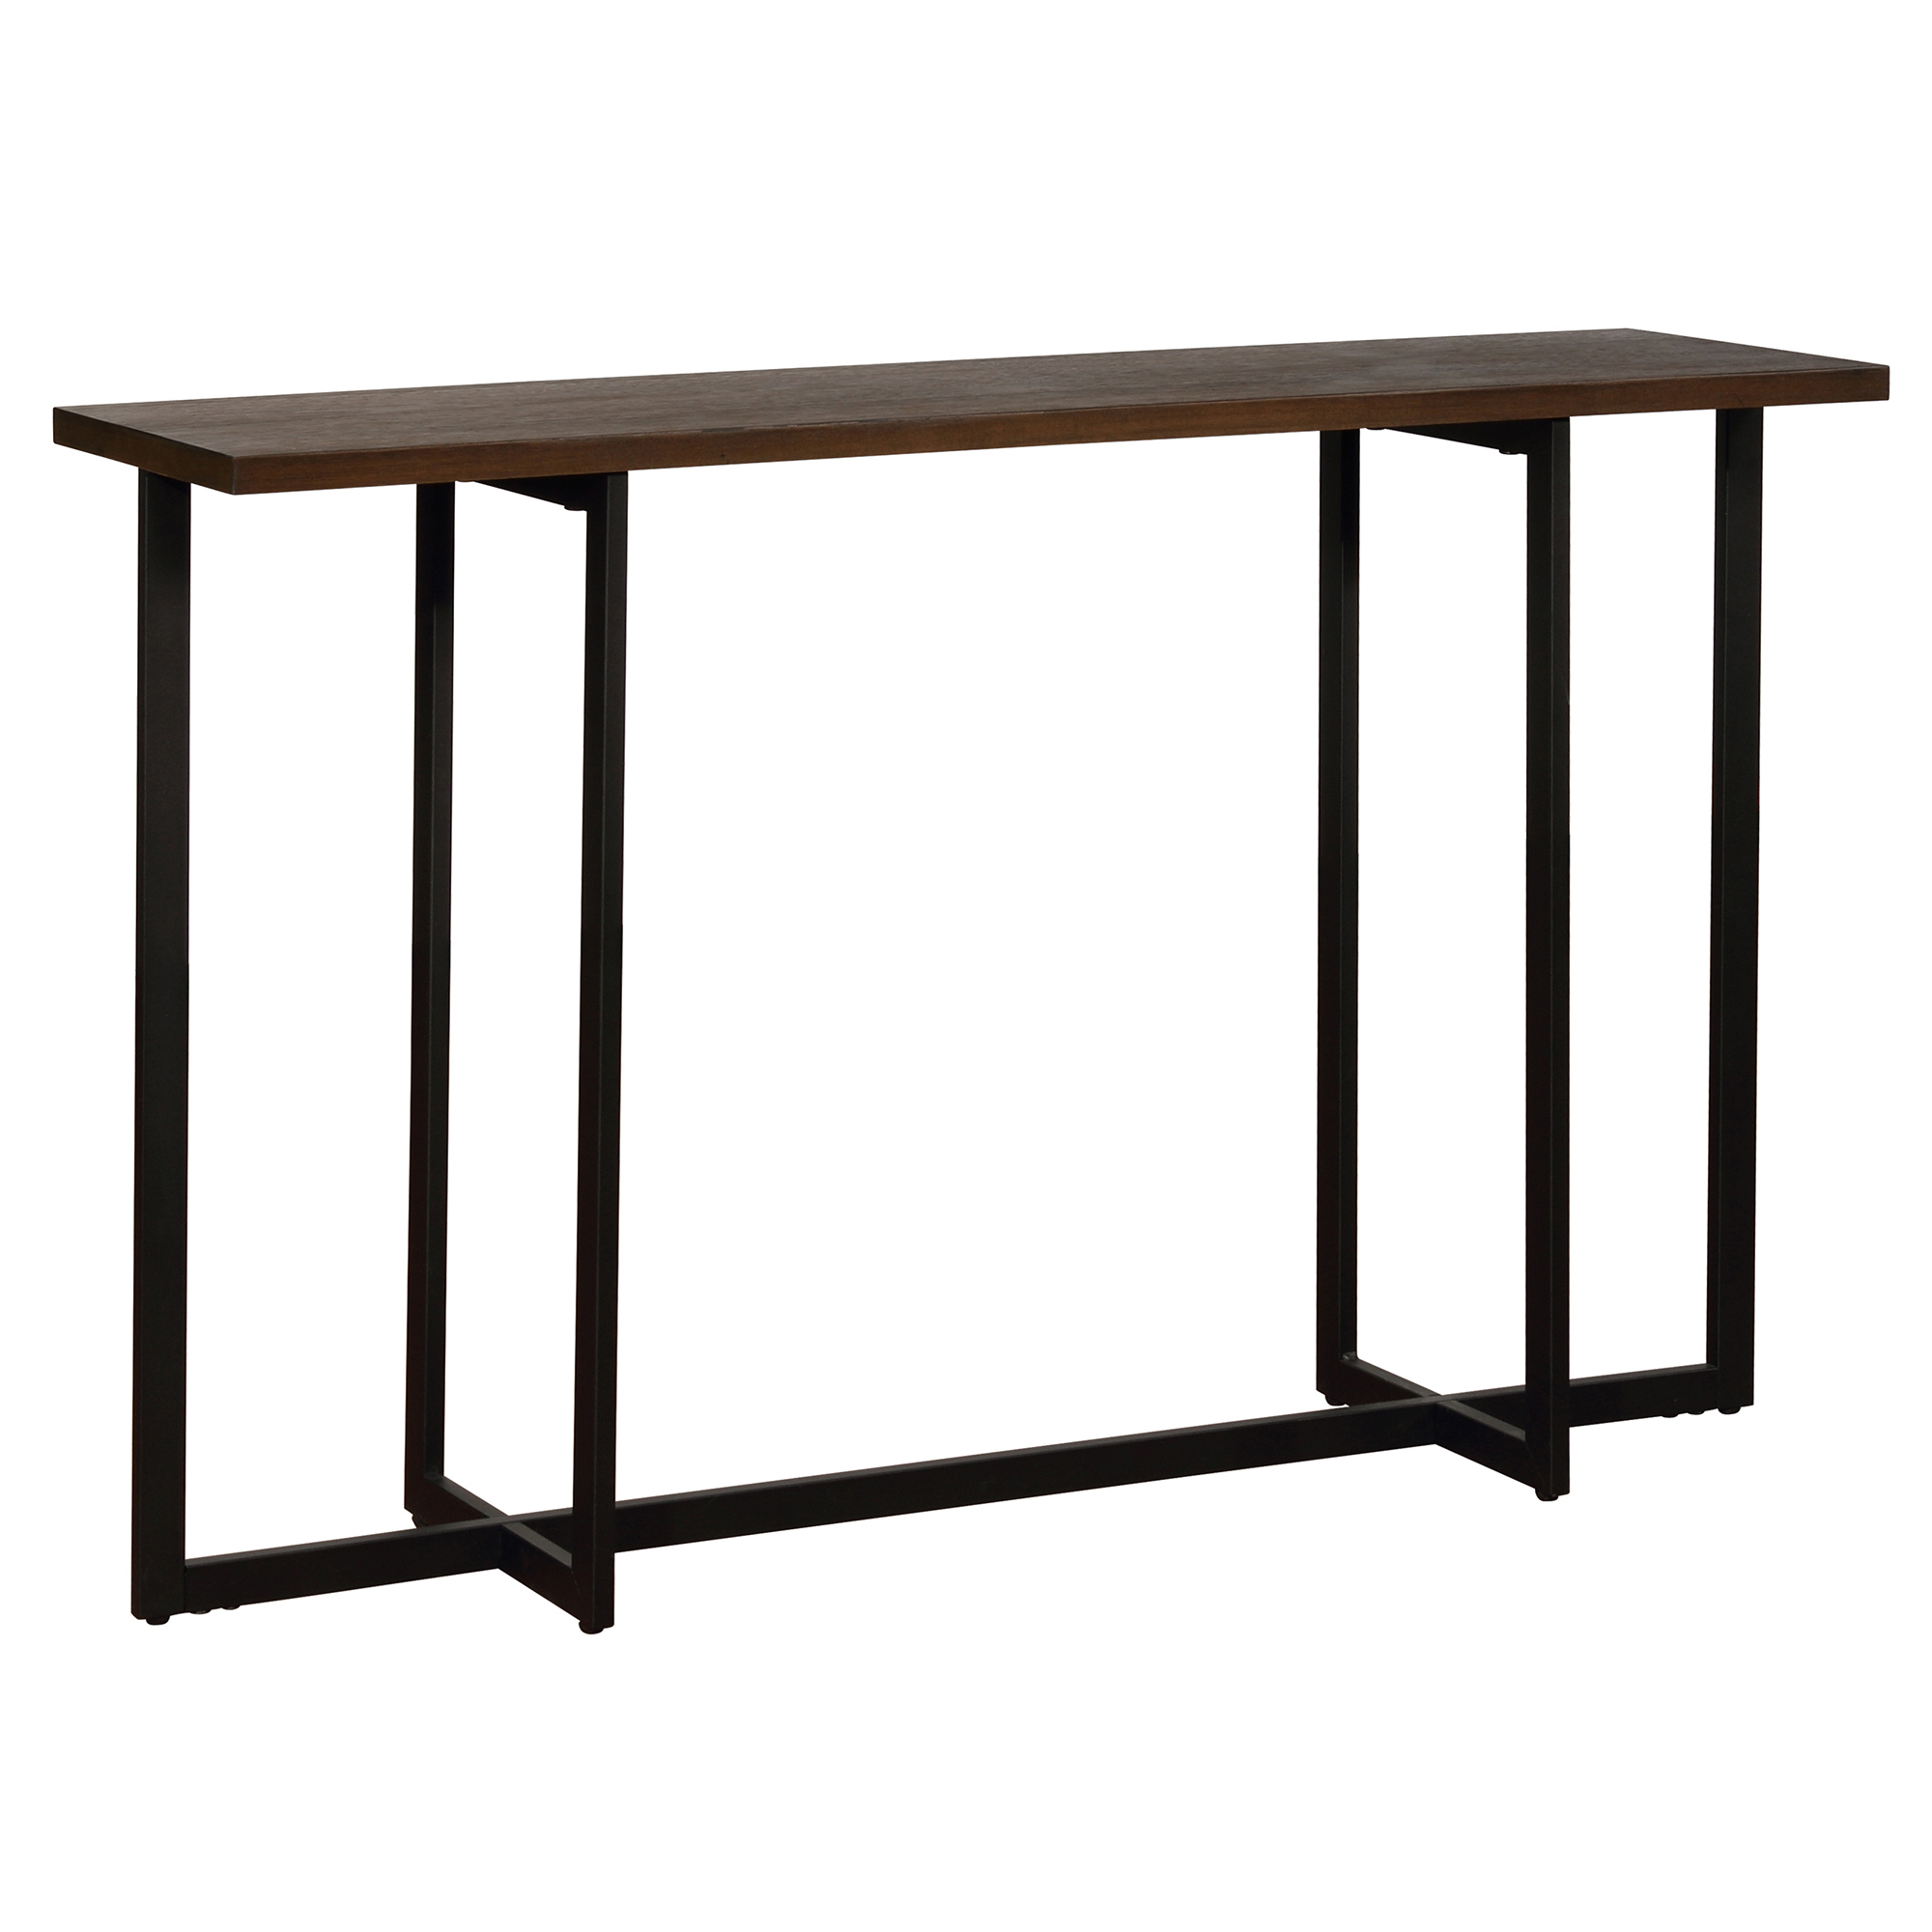 Modern MDF & Metal Console Table in Walnut